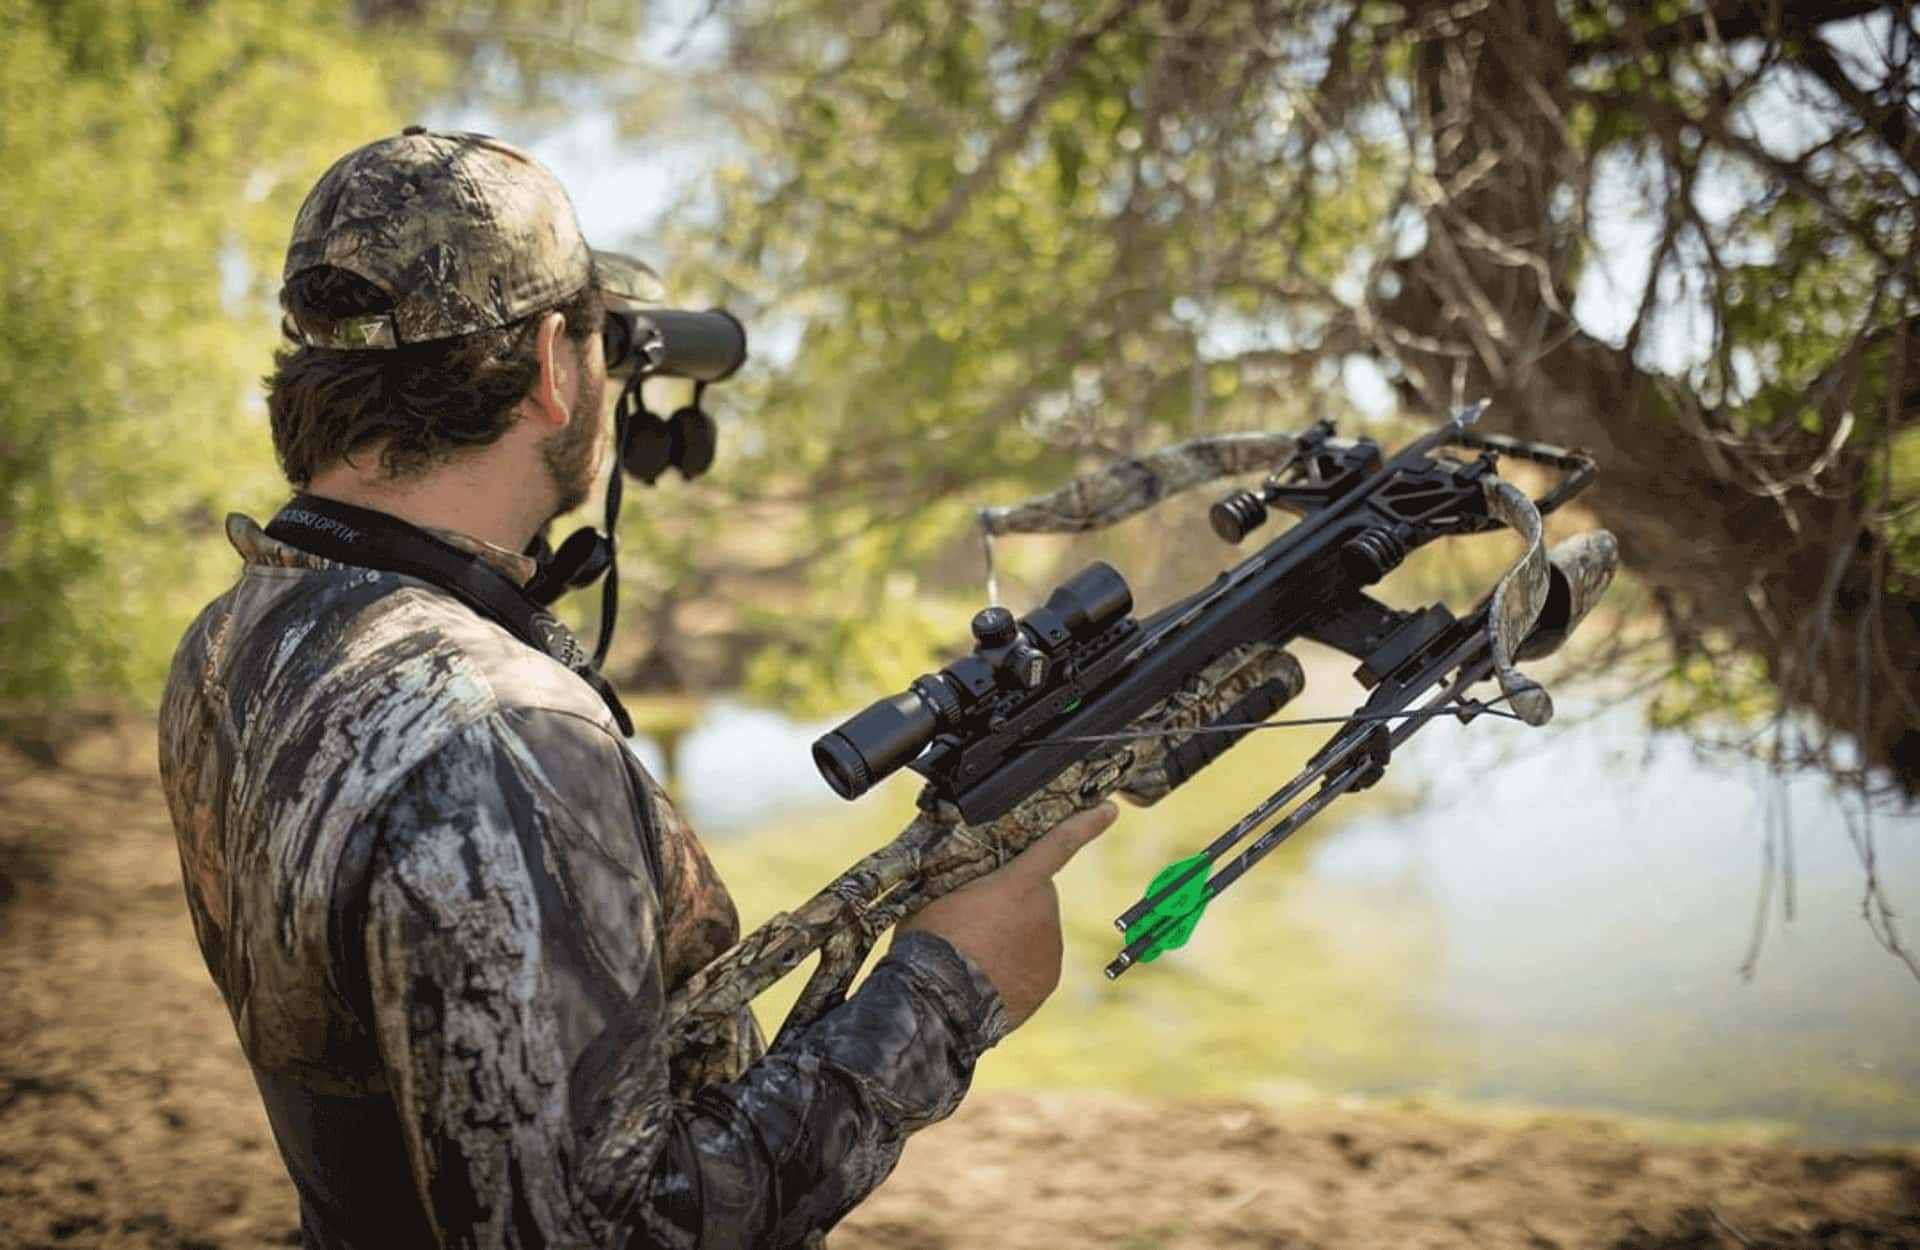 Excalibur Micro 340 TD Review – Ultra compact 340 FPS Crossbow With Easy Takedown System